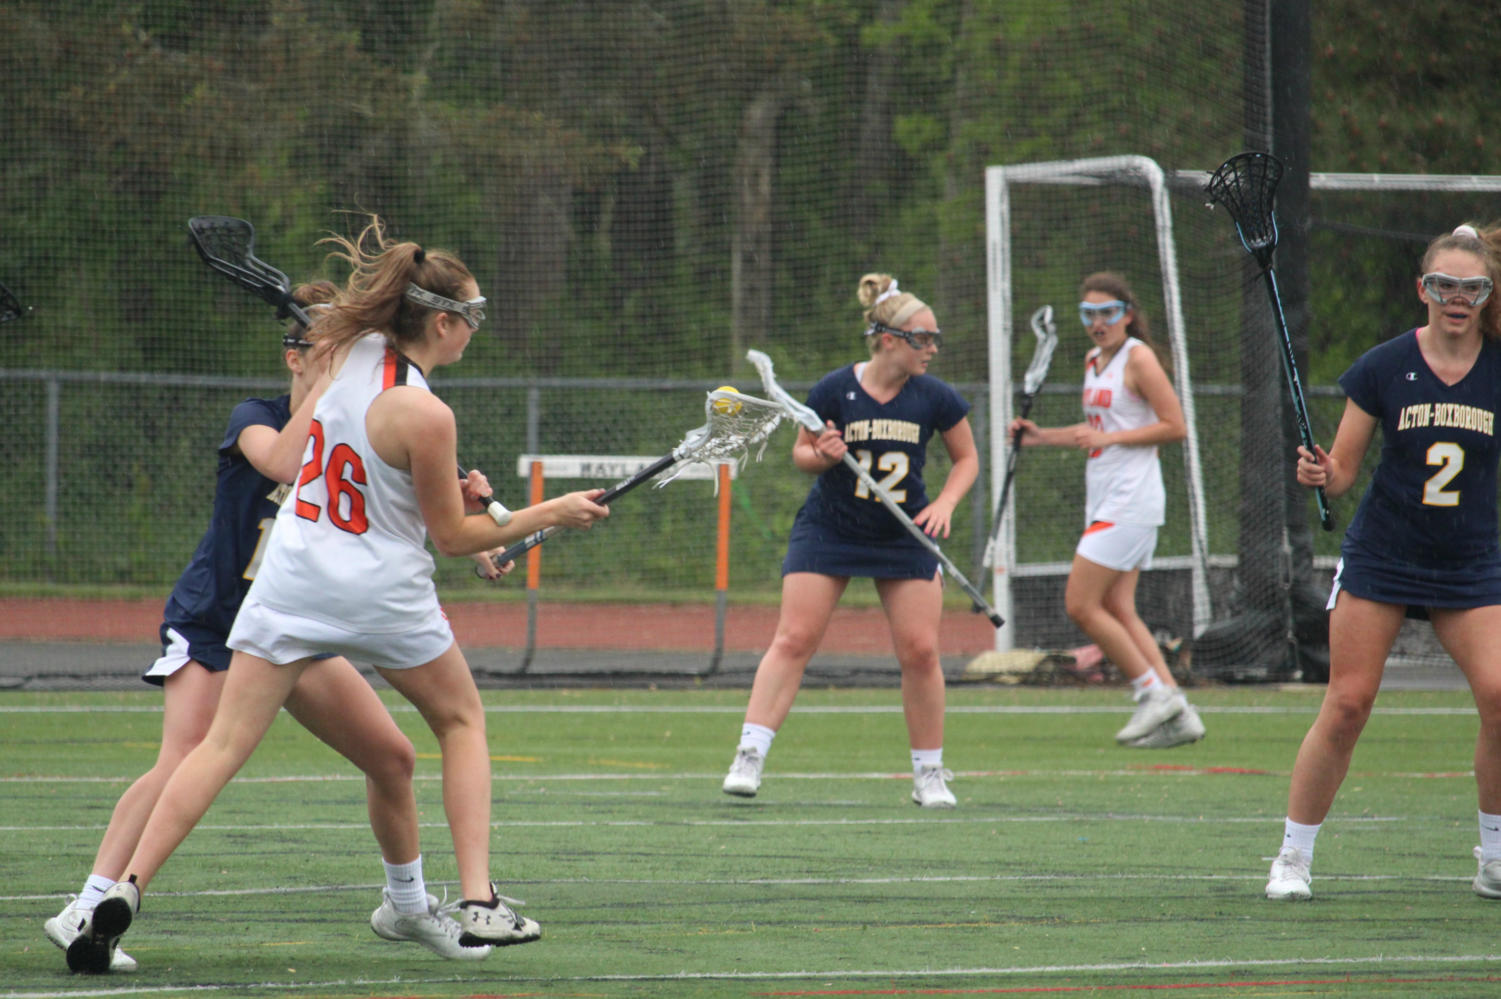 Senior+Lily+Tardif+fakes+to+the+right+to+evade+a+defender+as+she+rushes+to+the+net.